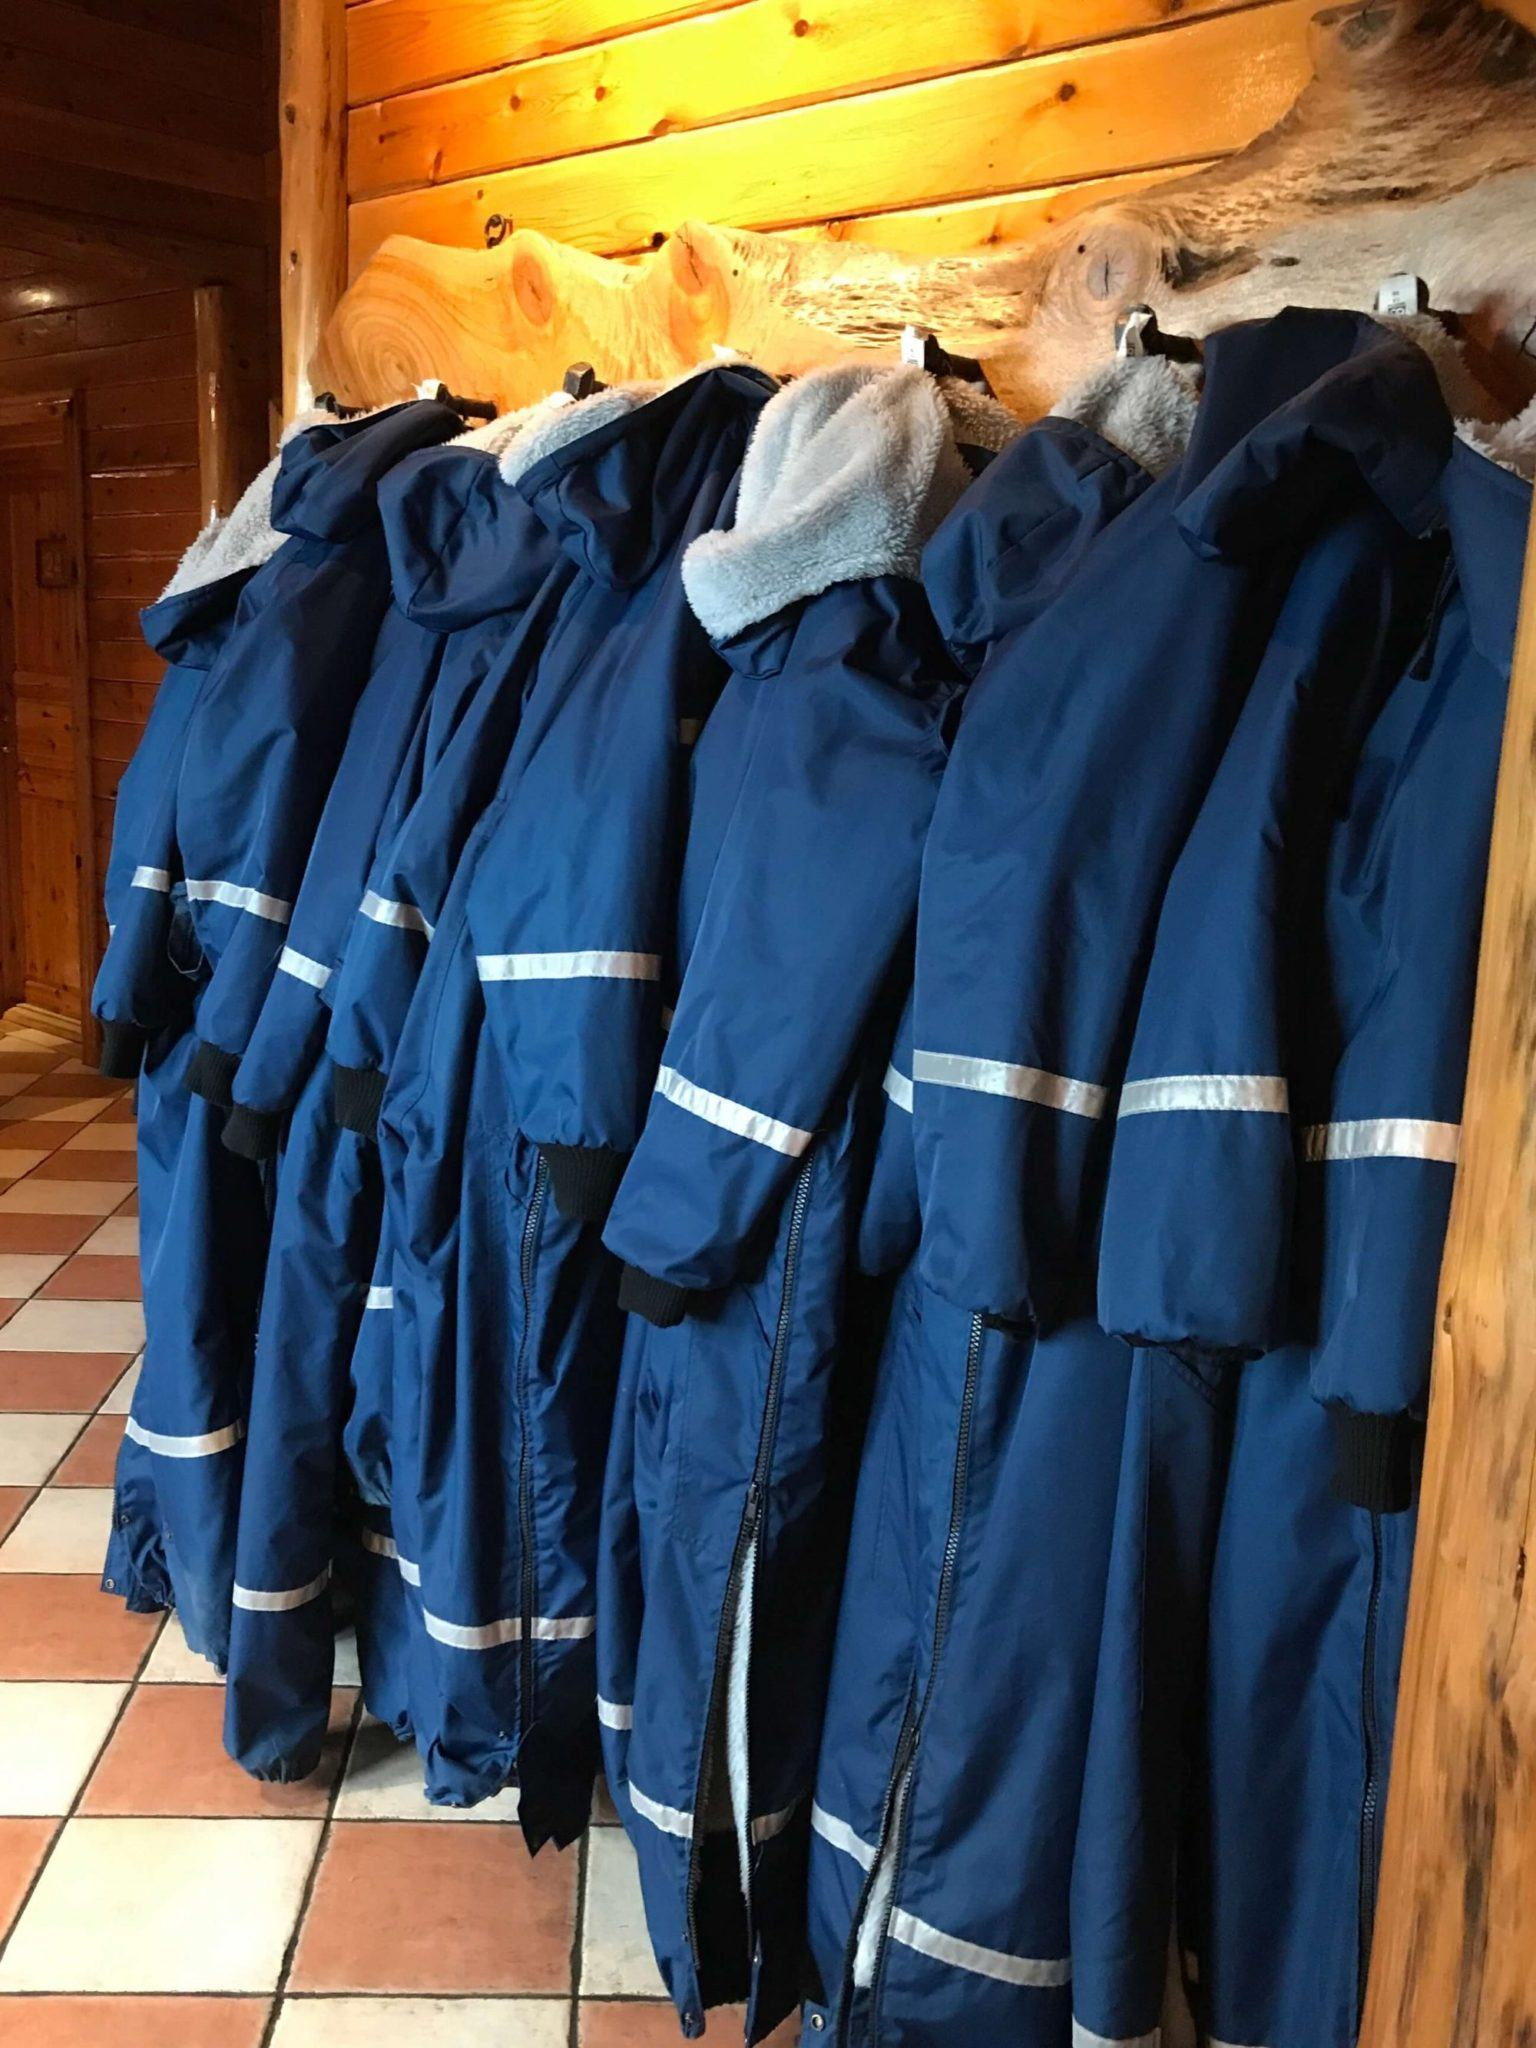 warm blue suits lined up at Hotel Ranga iceland